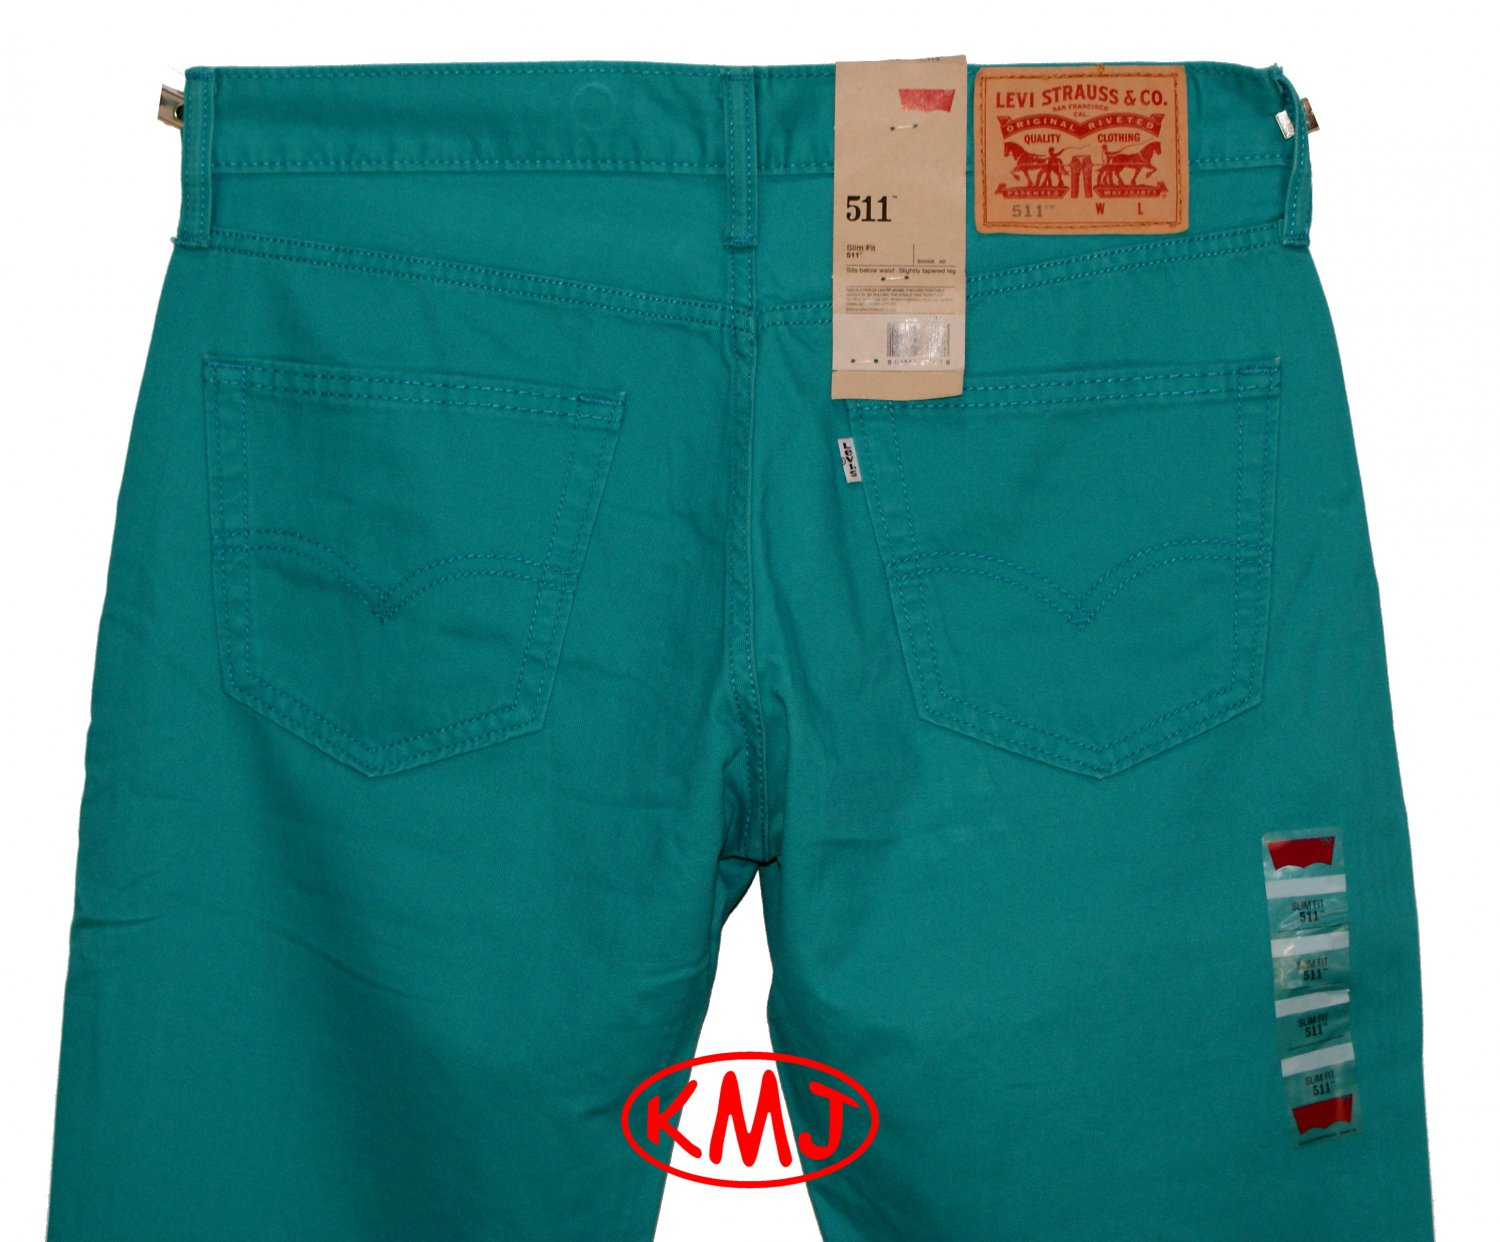 LEVI'S 511 SLIM FIT LAKE BLUE TURQUOISE COTTON TWILL PANTS in size W32 L32 (Actual size 32 31)